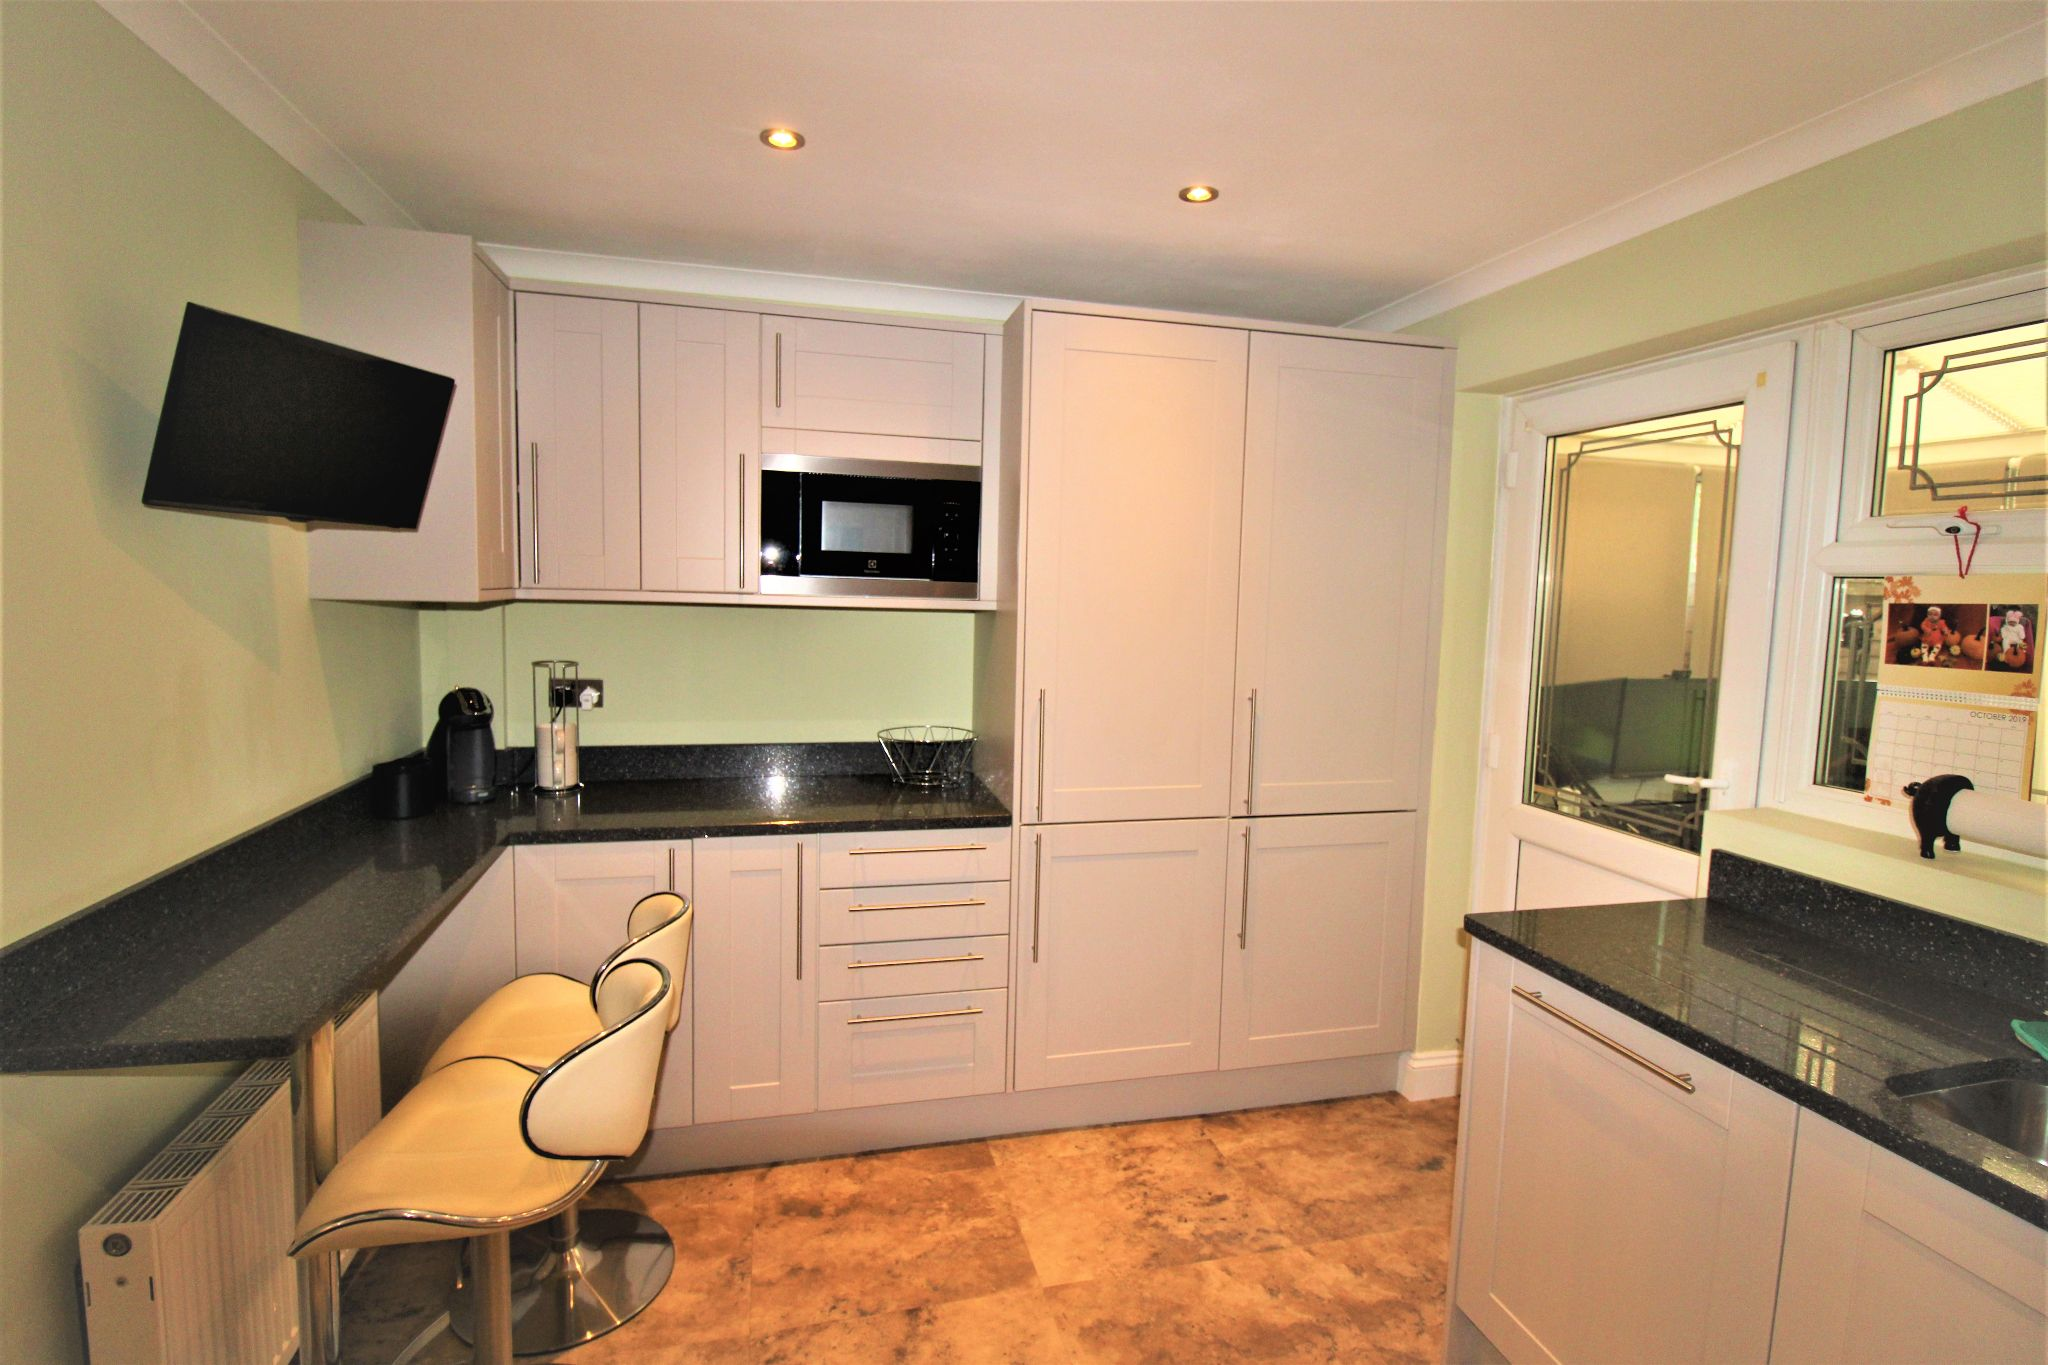 2 Bedroom End Terraced House For Sale - Kitchen 2